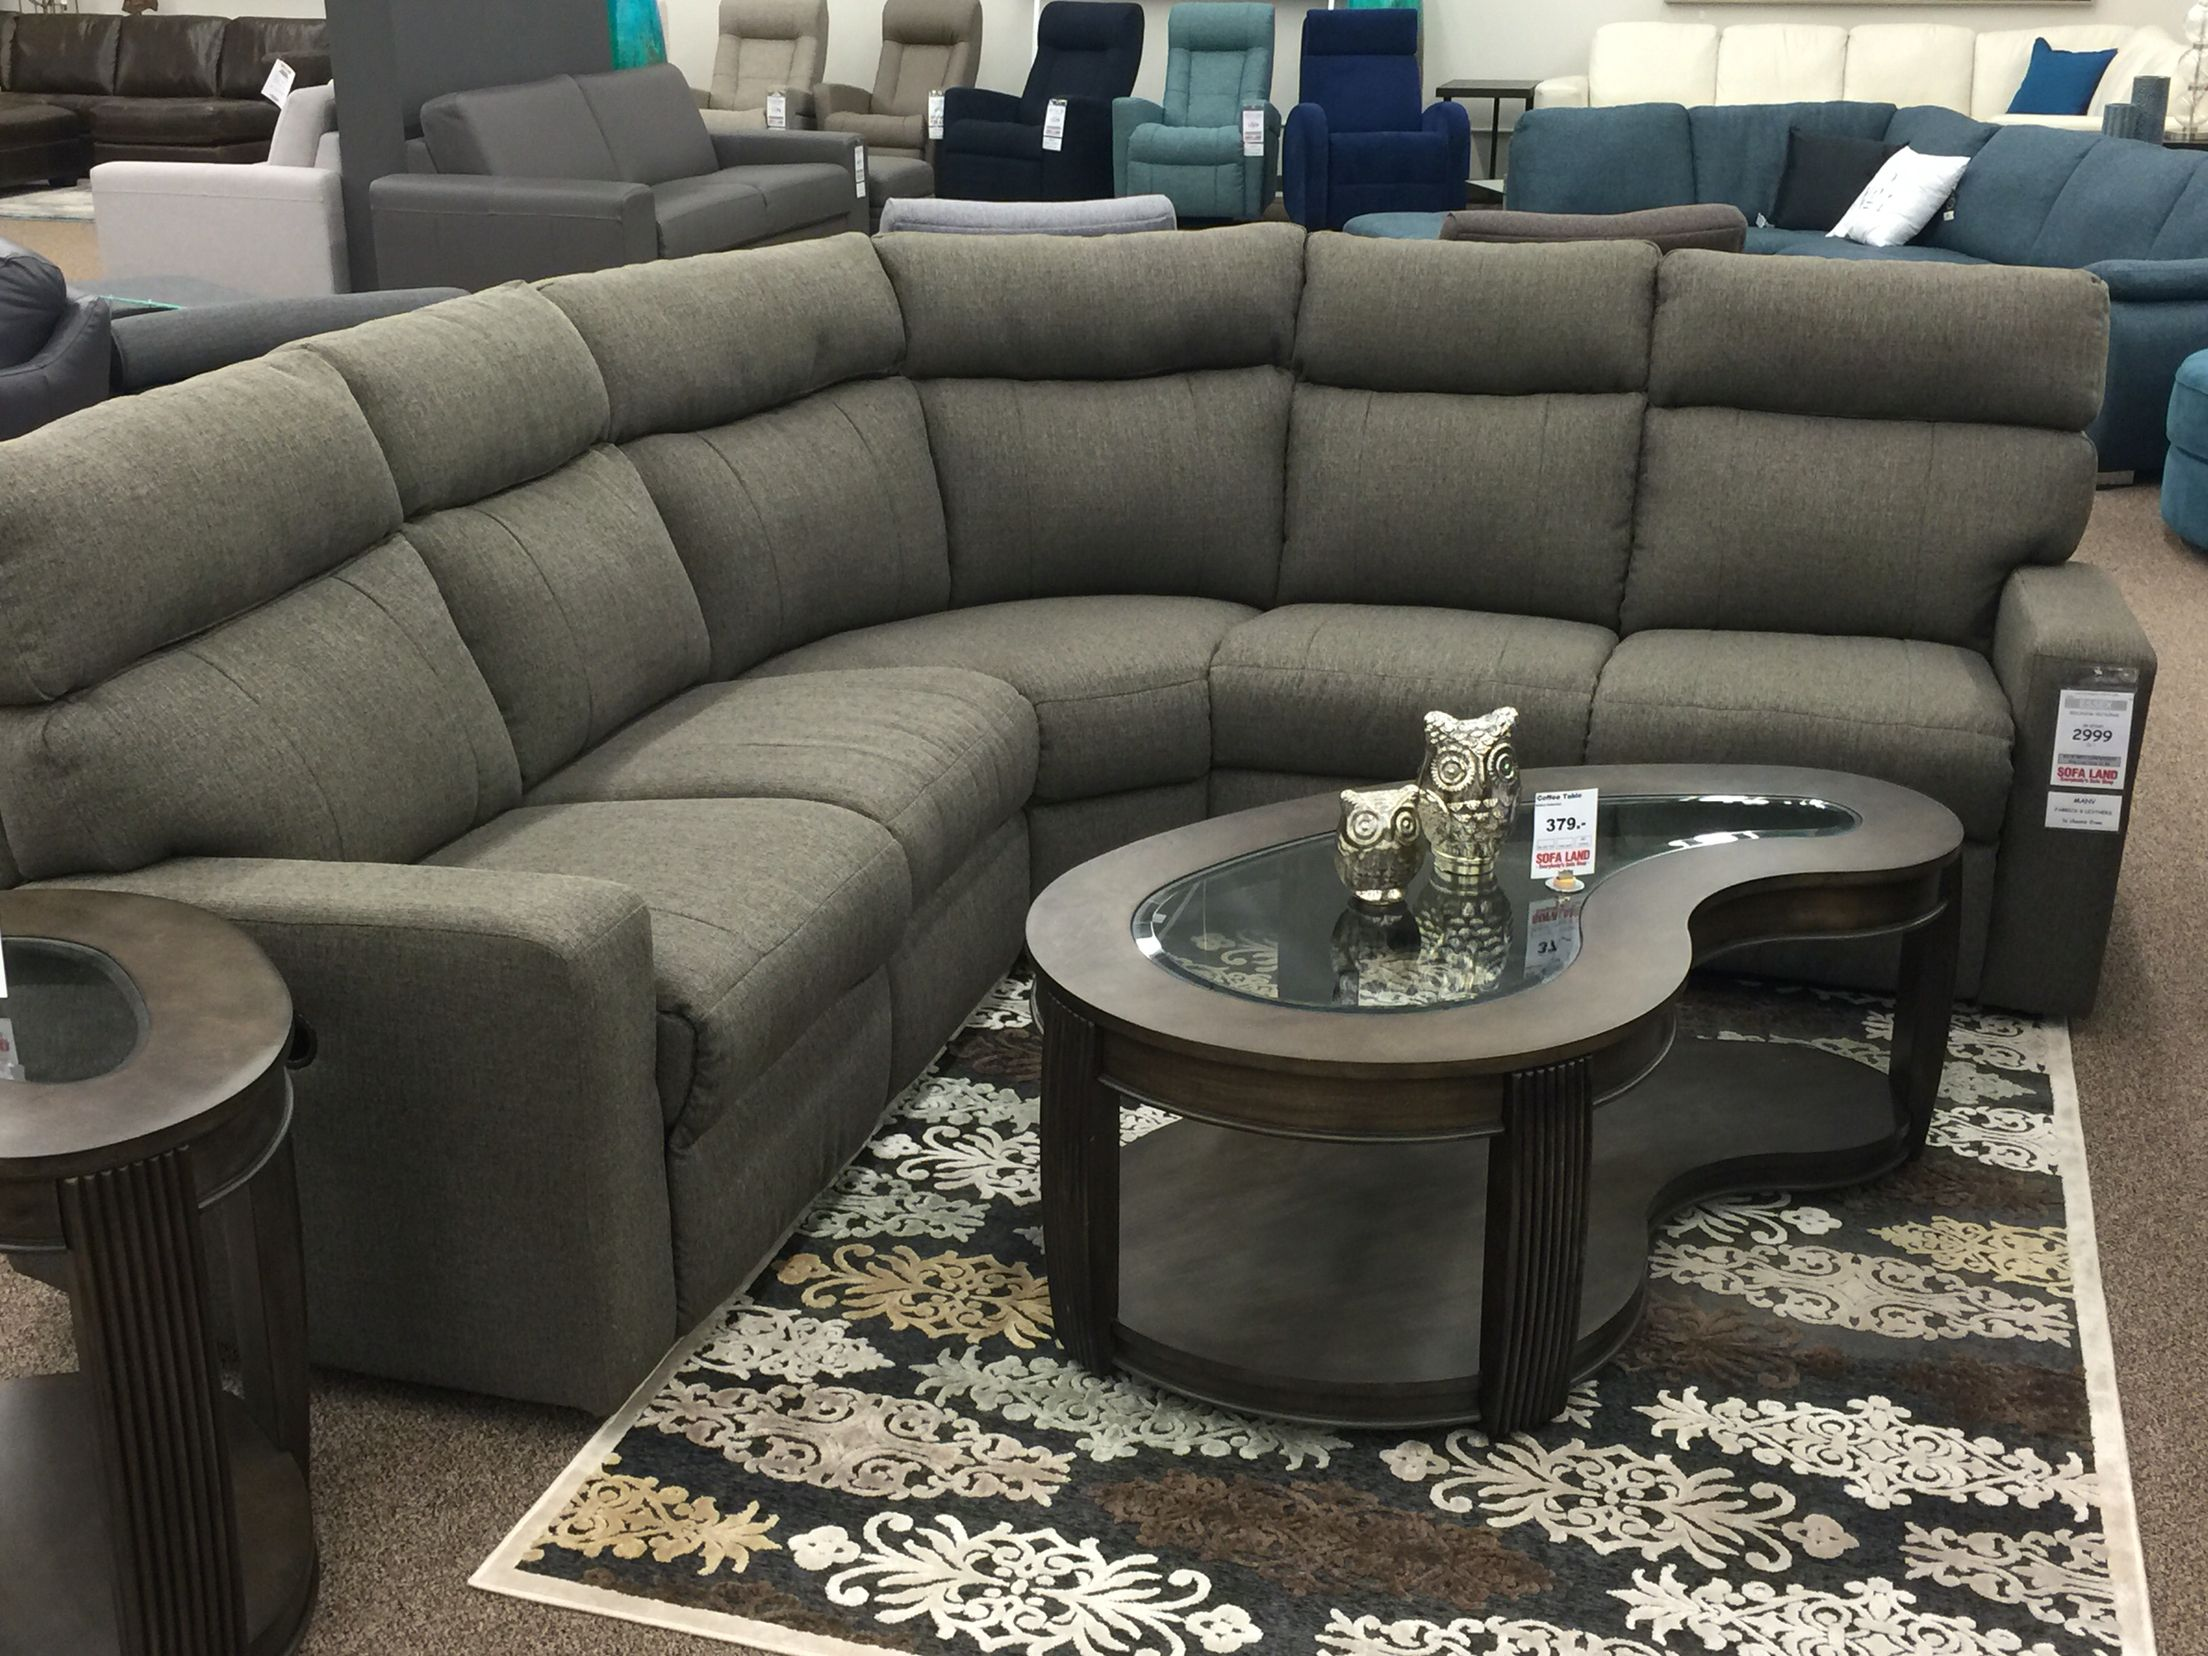 Look how amazed these owls are with our new Es sectional There